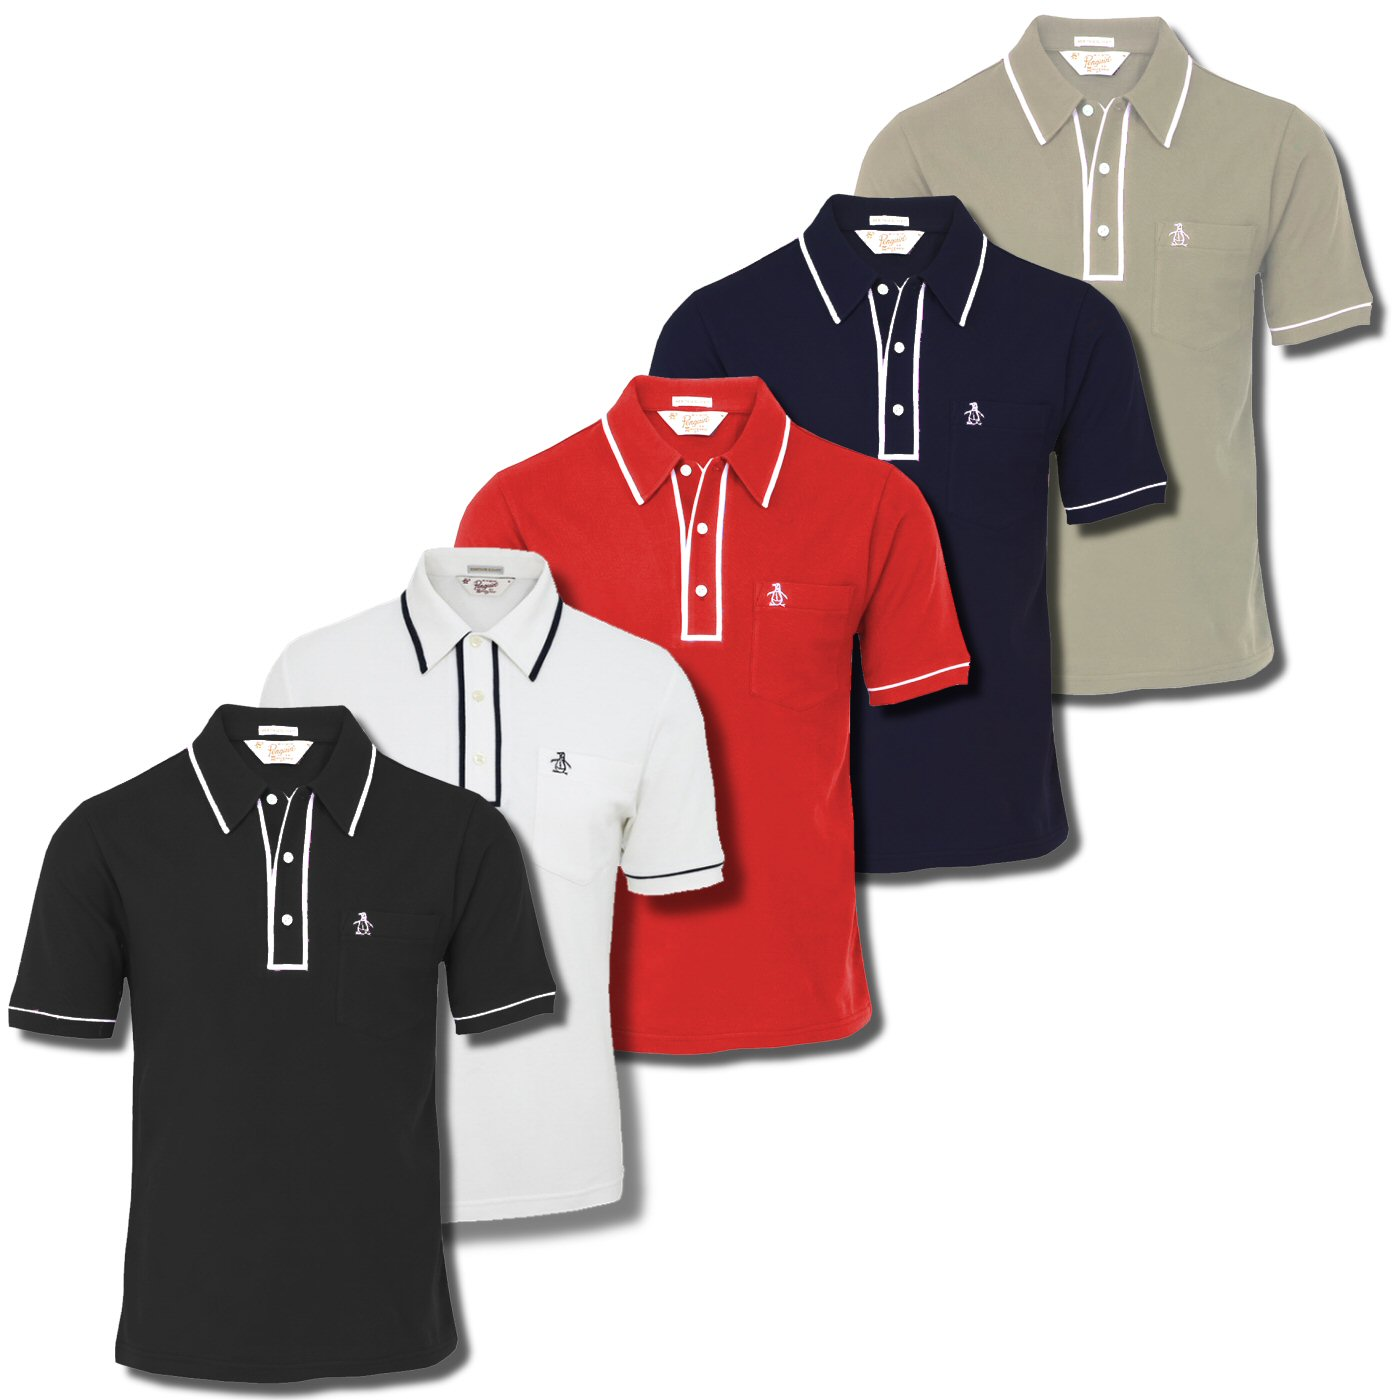 2202c60b Penguin Polo Shirts Philippines For Sale - Cotswold Hire